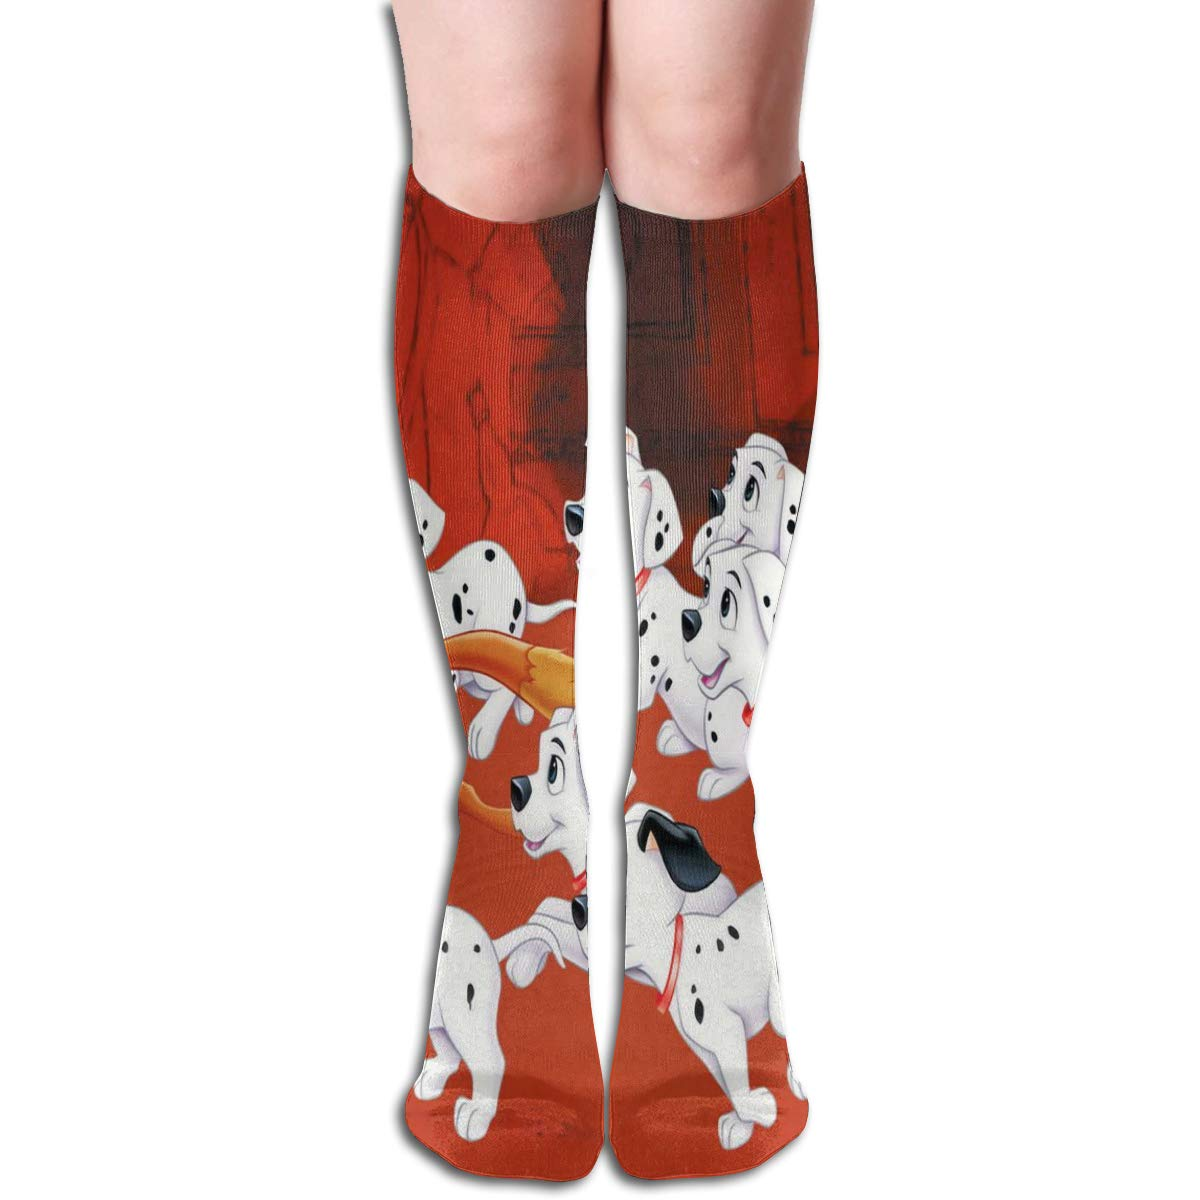 Stretch Stocking Very Puppy And Fox Soccer Socks Over The Calf Amazing For Running,Athletic,Travel